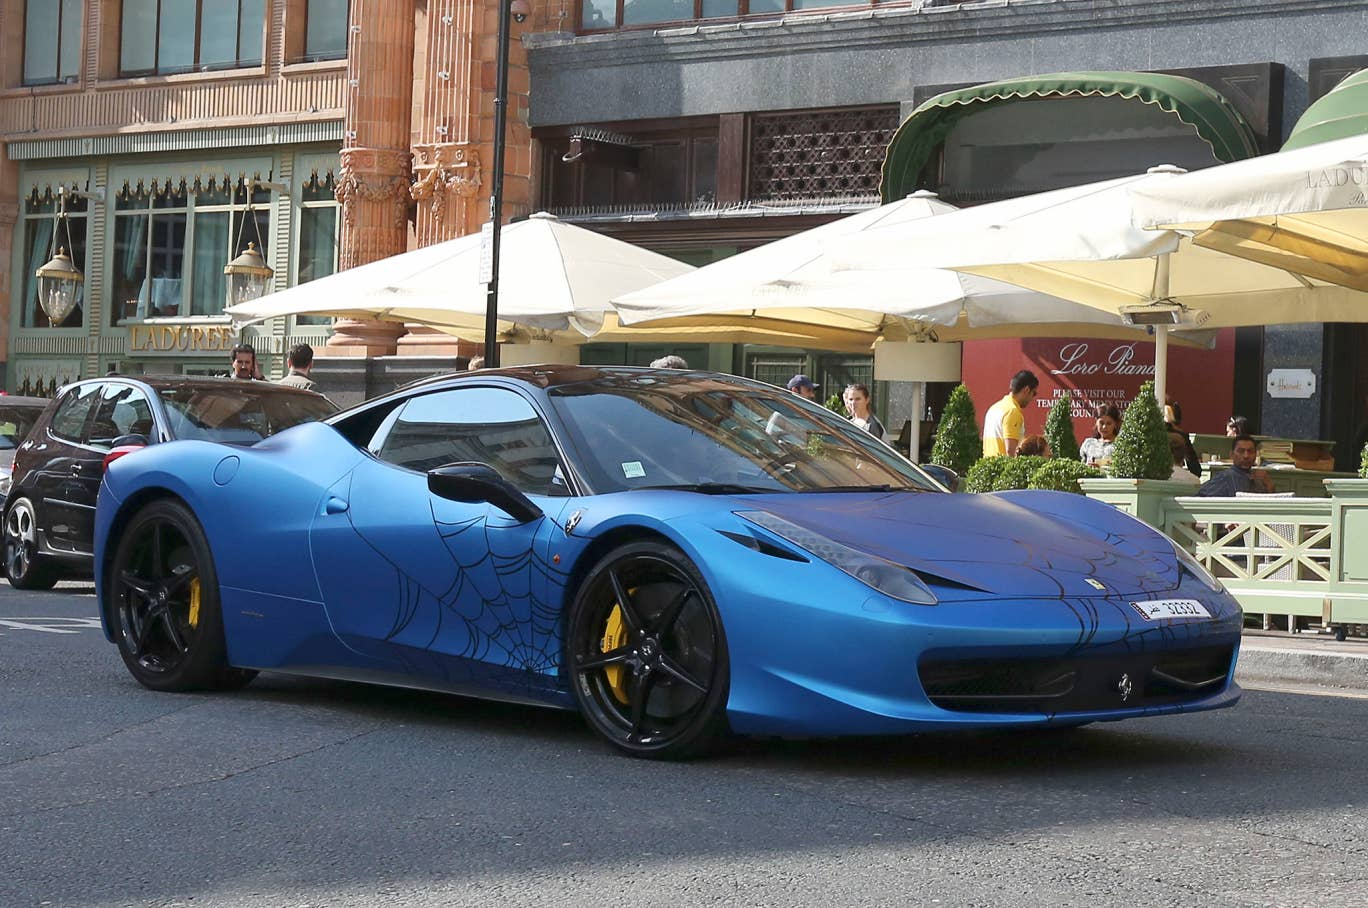 A Ferrari 458 with custom bodywork outside Harrods in Knightsbridge